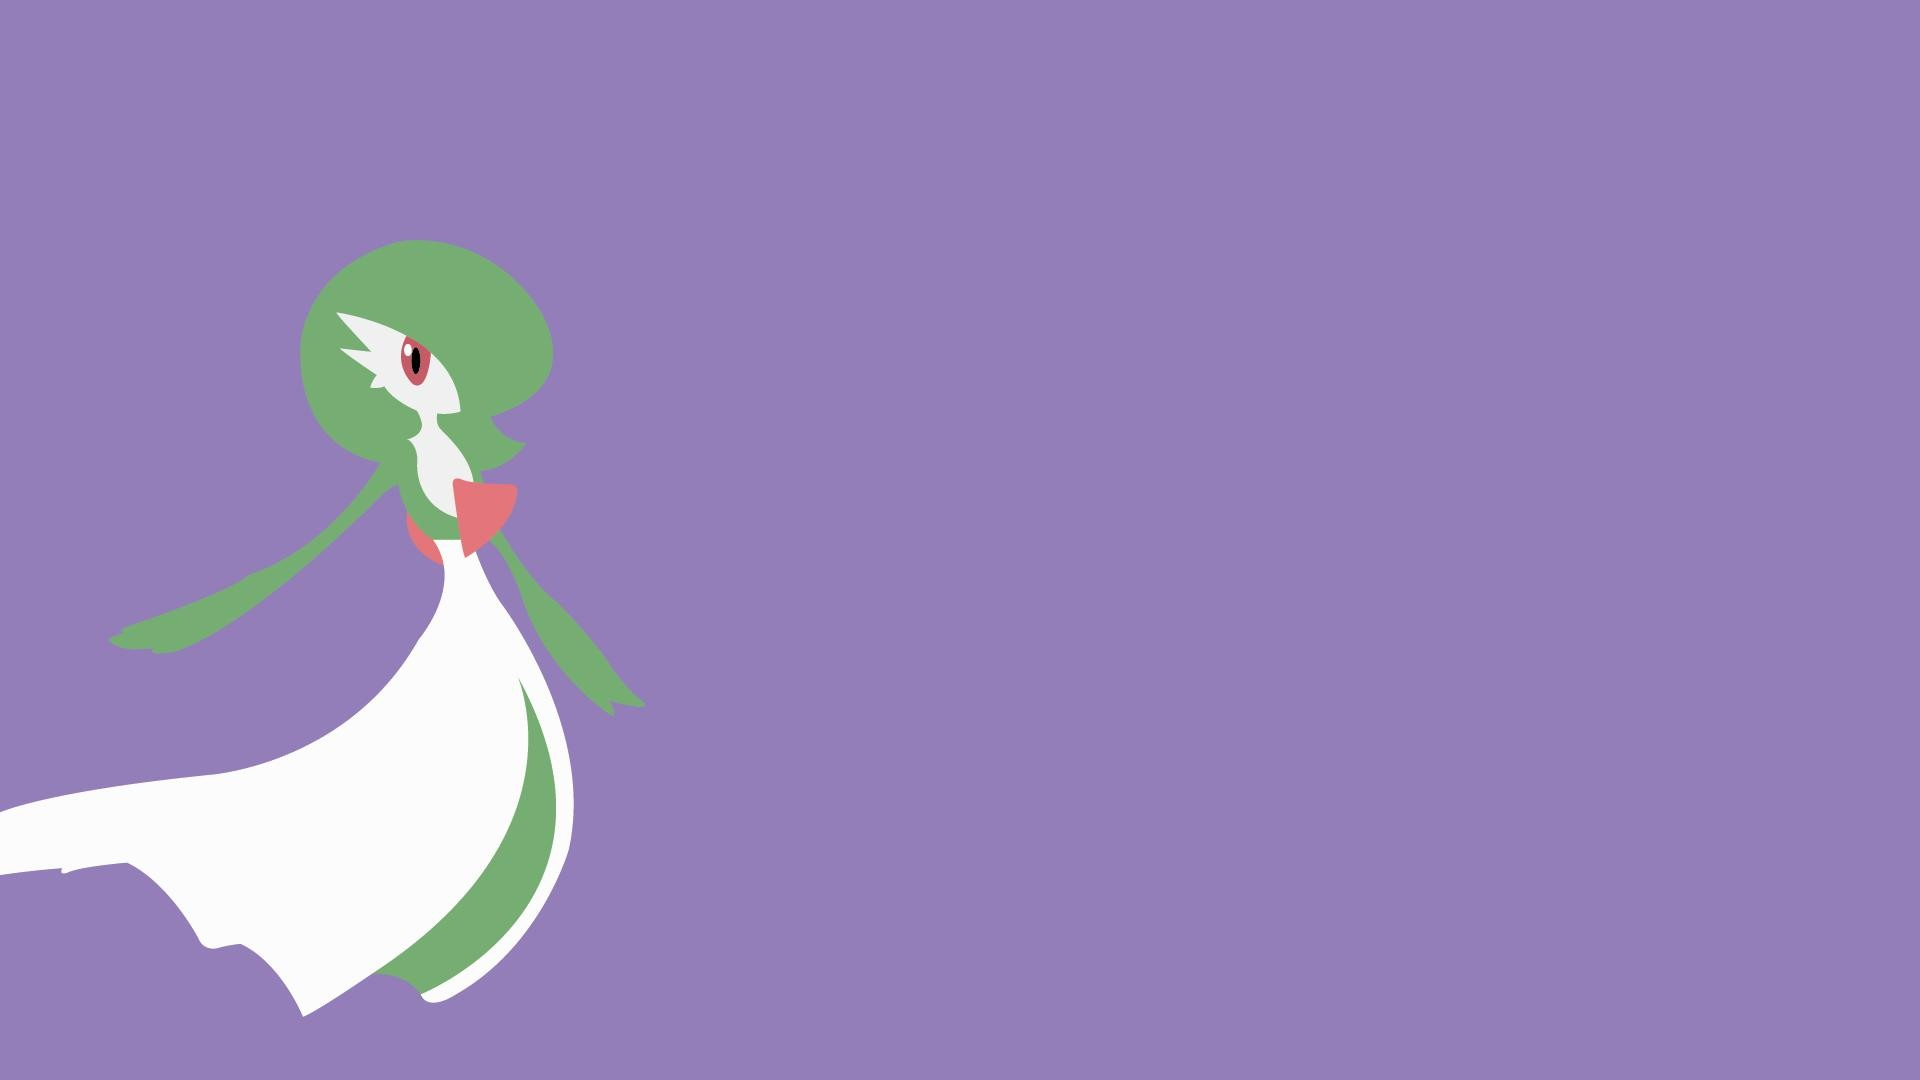 Shiny Mega Gardevoir Wallpaper: Gardevoir Wallpapers ·① WallpaperTag